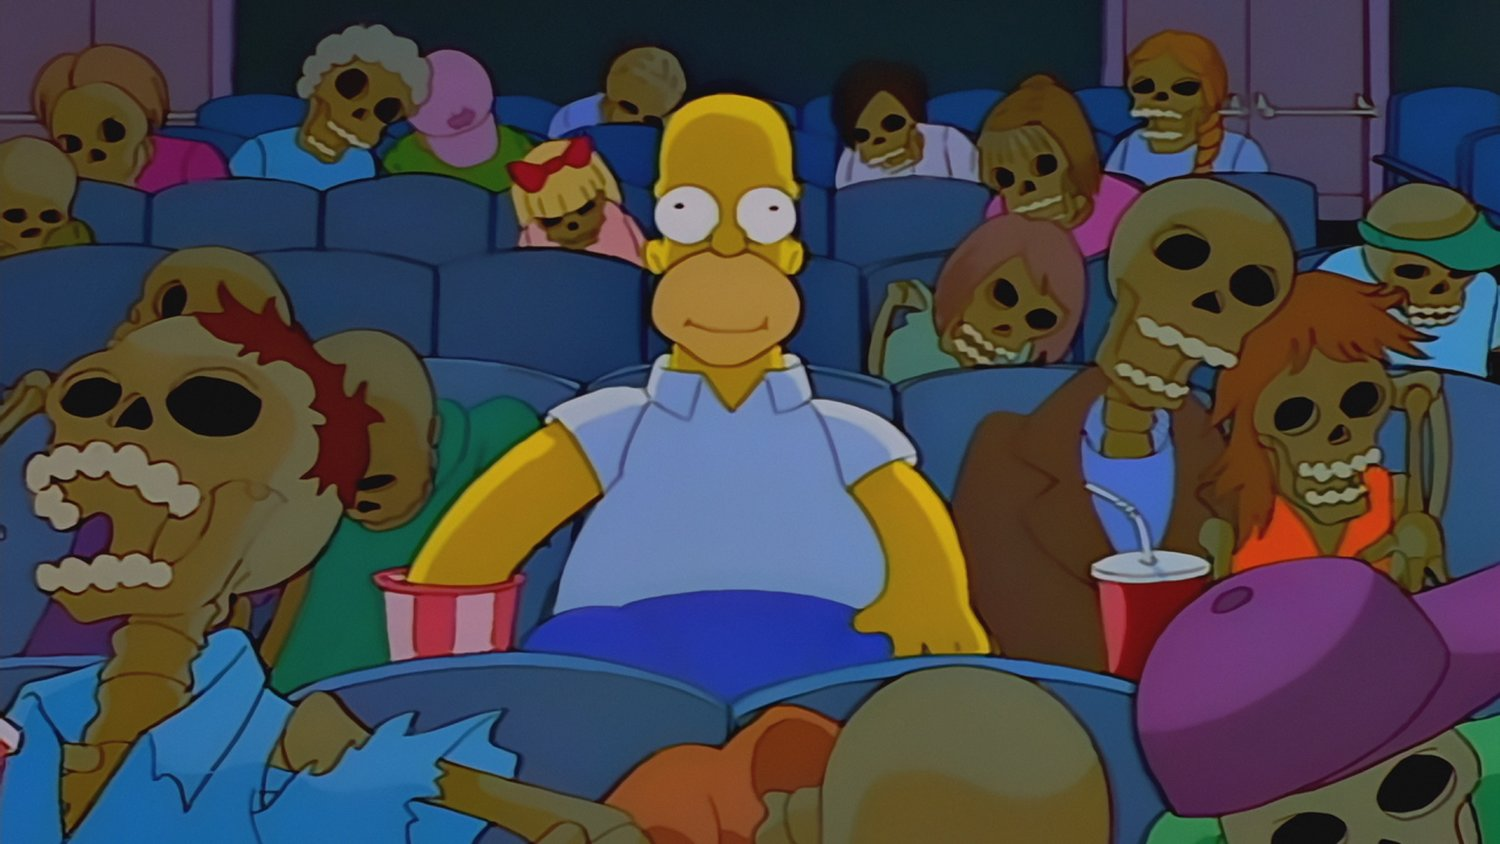 THE SIMPSONS 2019